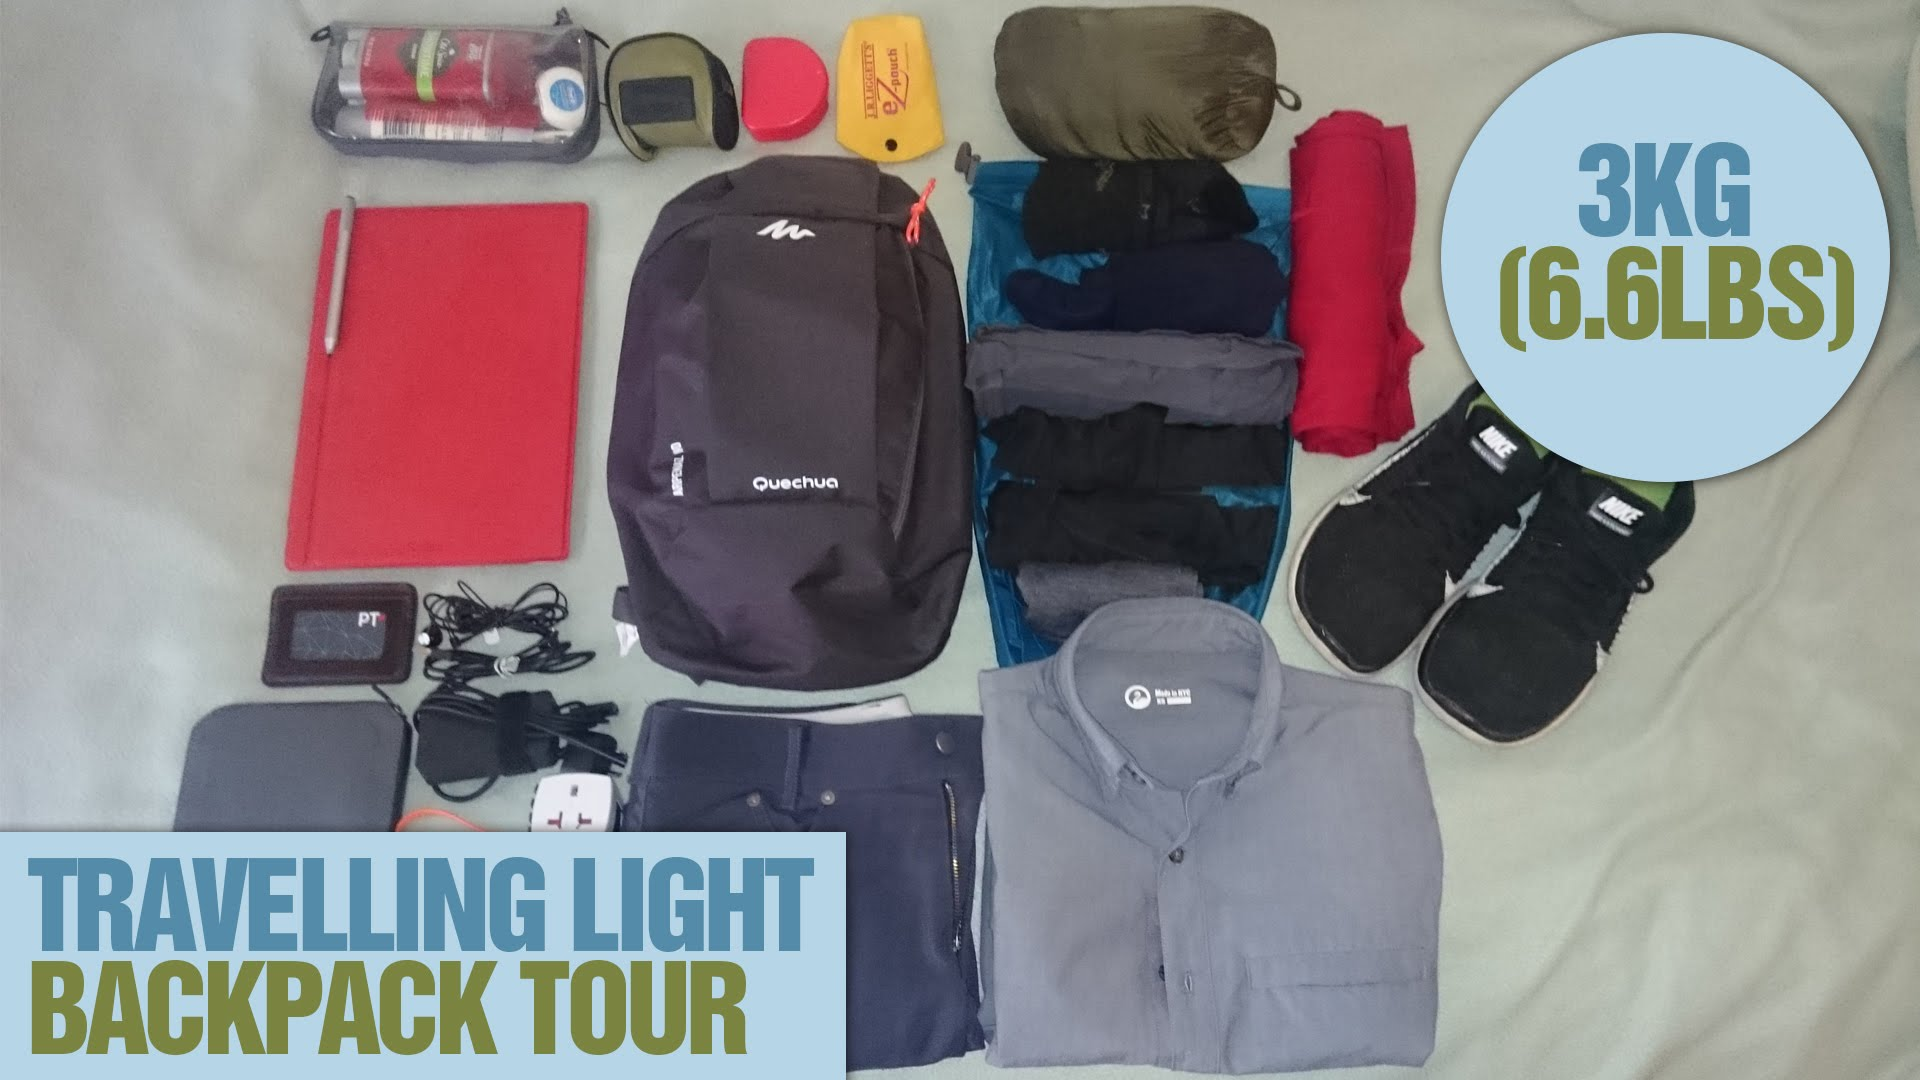 Travelling-Light-3kg-6lbs-backpack-with-laptop